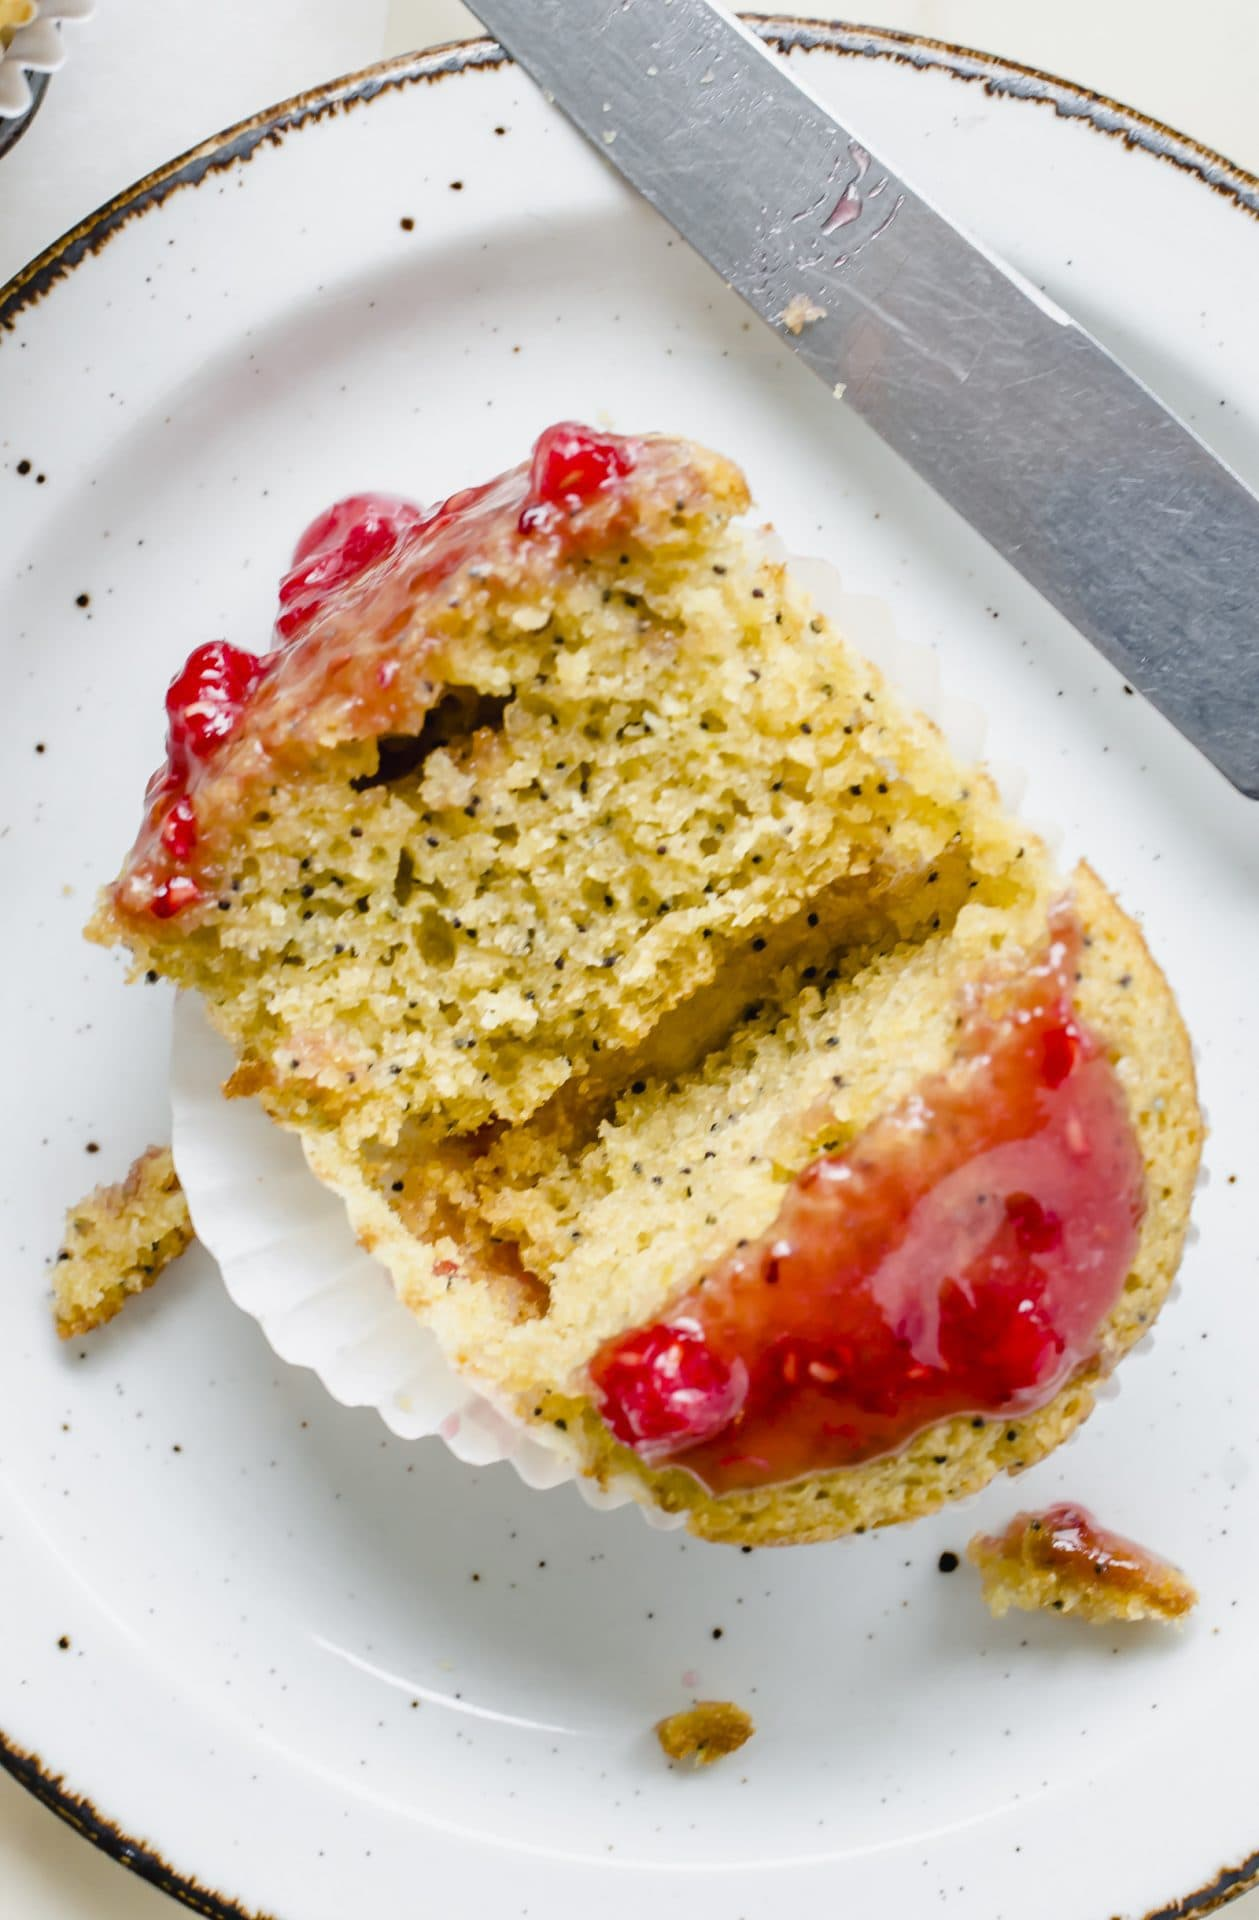 A lemon poppyseed muffins with fresh raspberry glaze on top cut down the center.